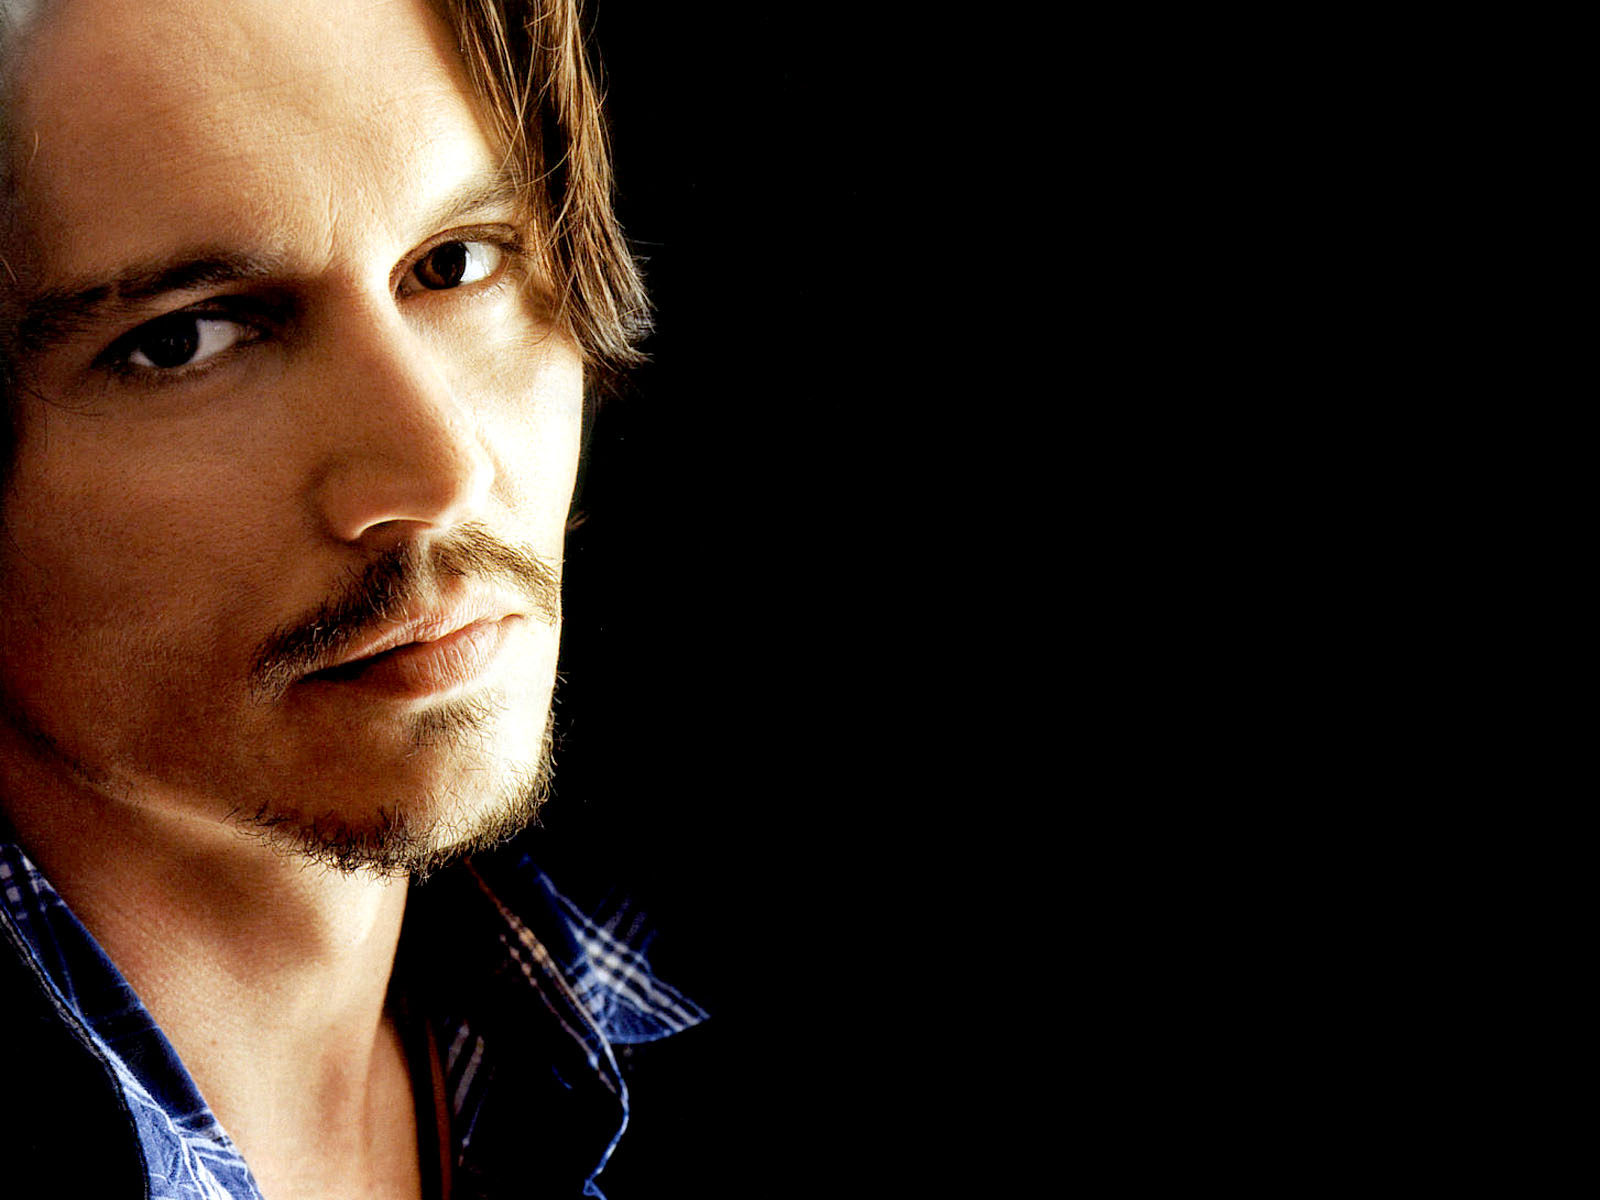 johnny depp wallpaper 1727